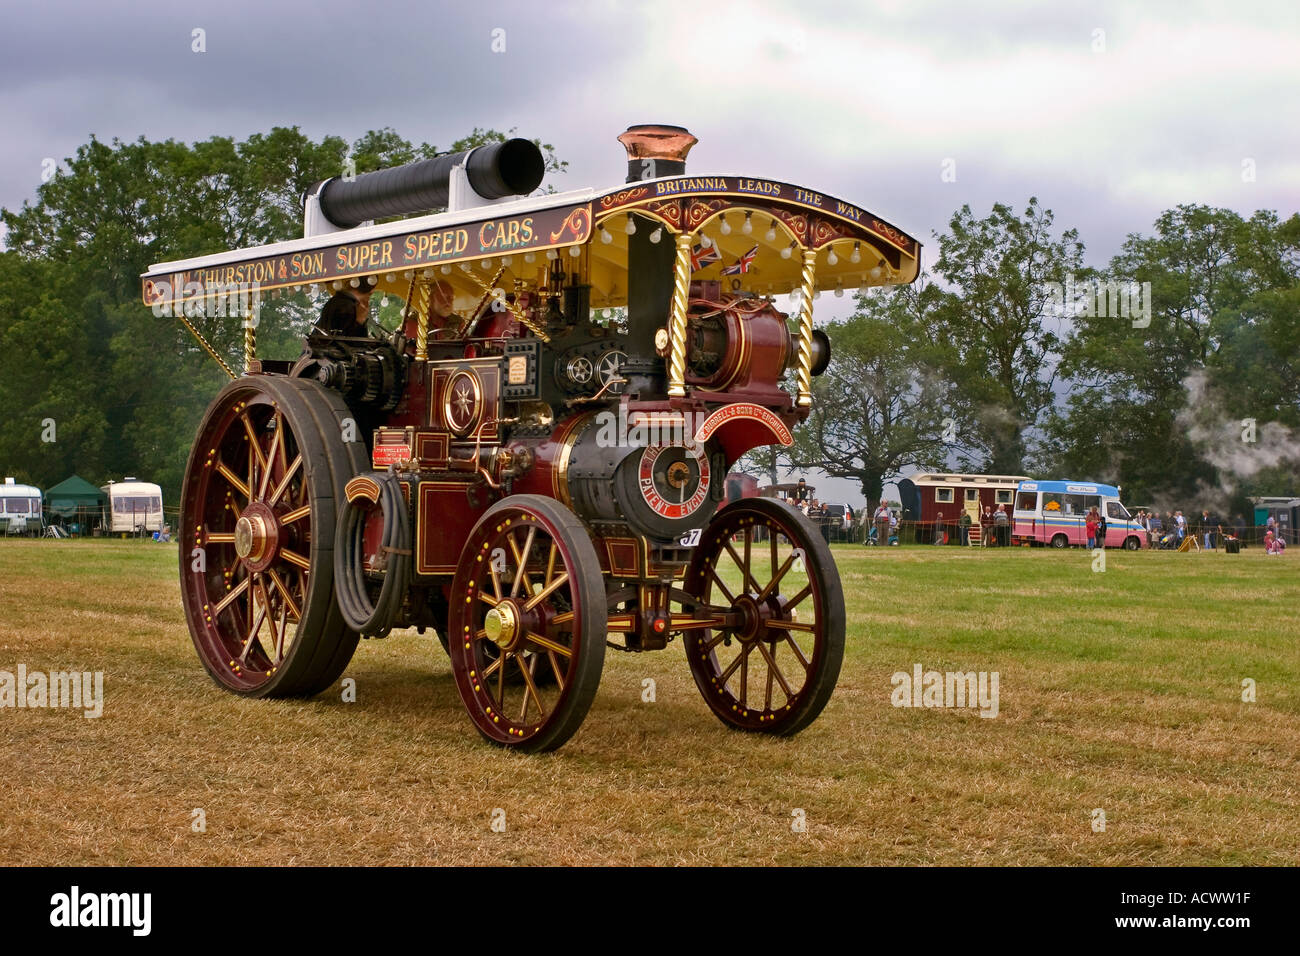 Prestwood Steam Fair Showmans Traction engine. EDITORIAL USE ONLY - Stock Image